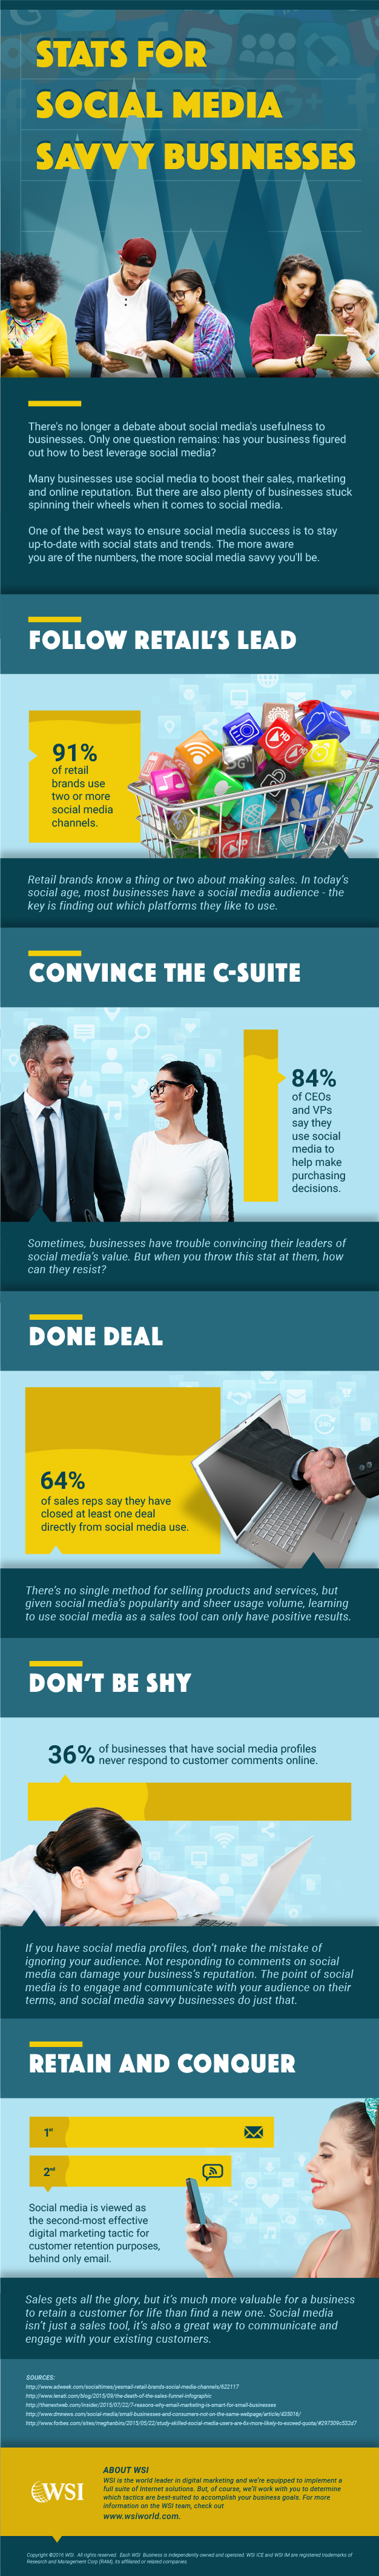 Look at our 'Stats For Social Media Savvy Businesses' infographic